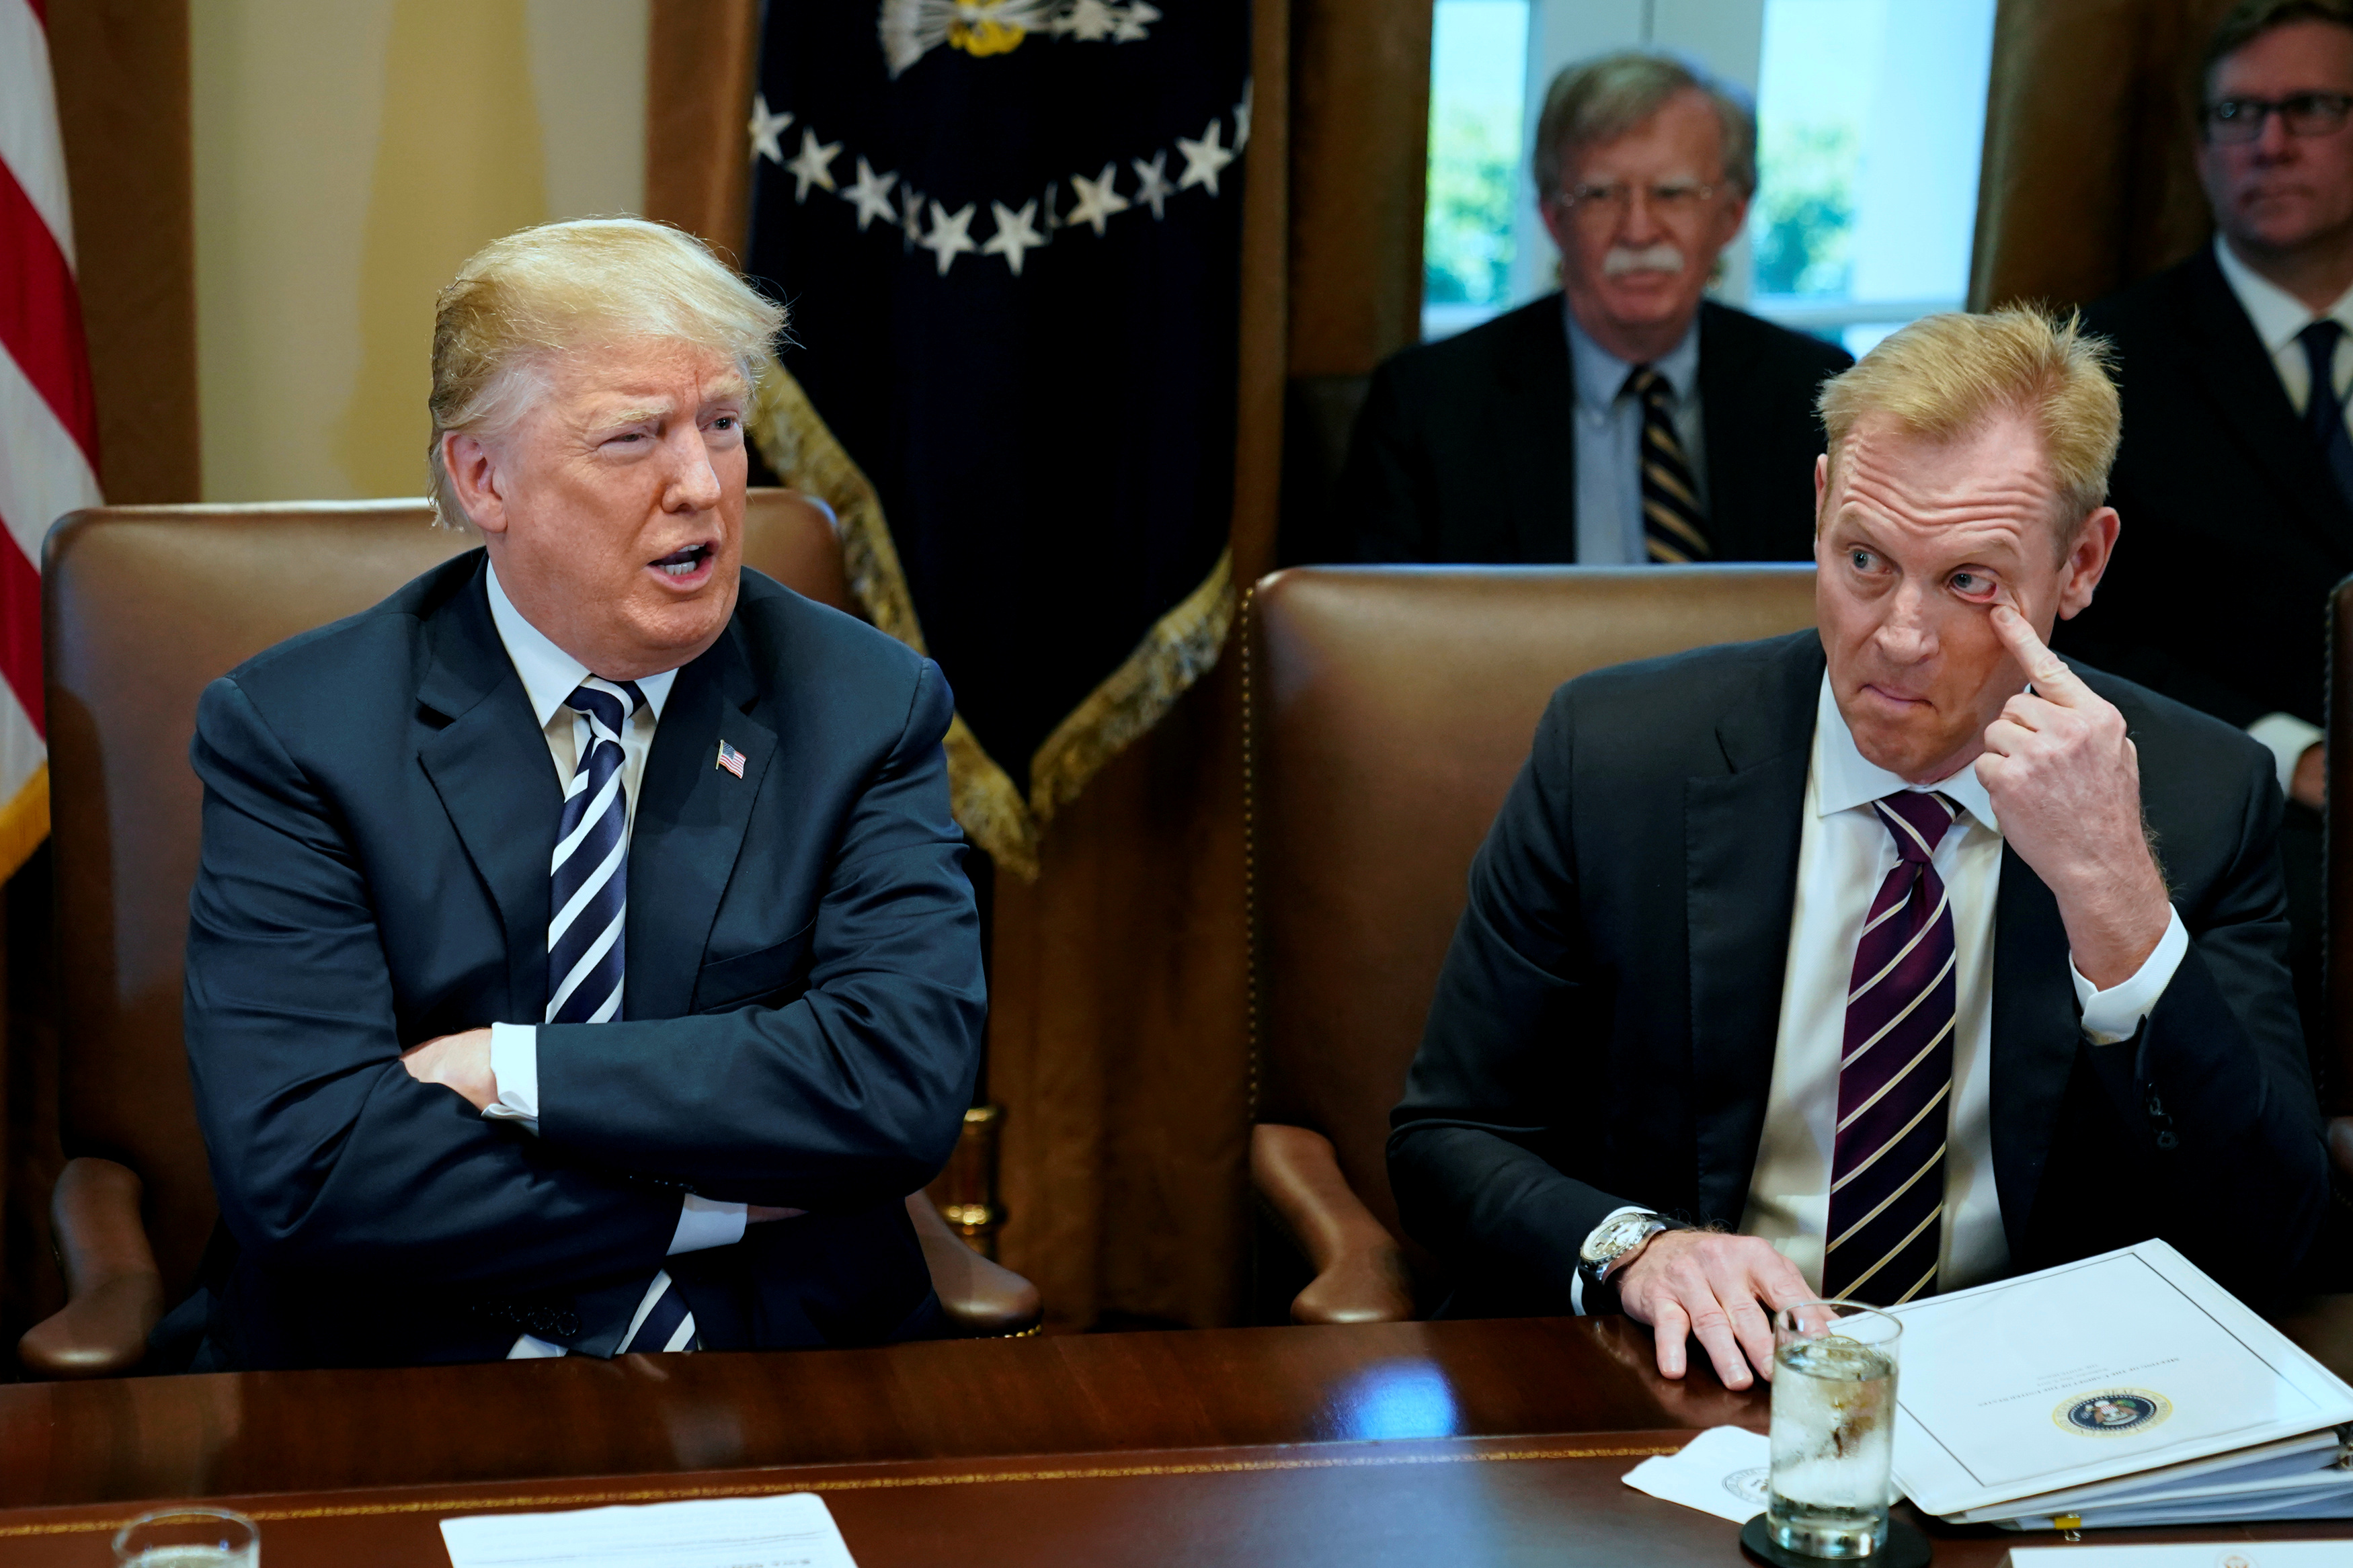 FILE PHOTO: U.S. President Donald Trump, flanked by Deputy Secretary of Defense Patrick Shanahan, holds a cabinet meeting at the White House in Washington, U.S. May 9, 2018. REUTERS/Jonathan Ernst/File Photo